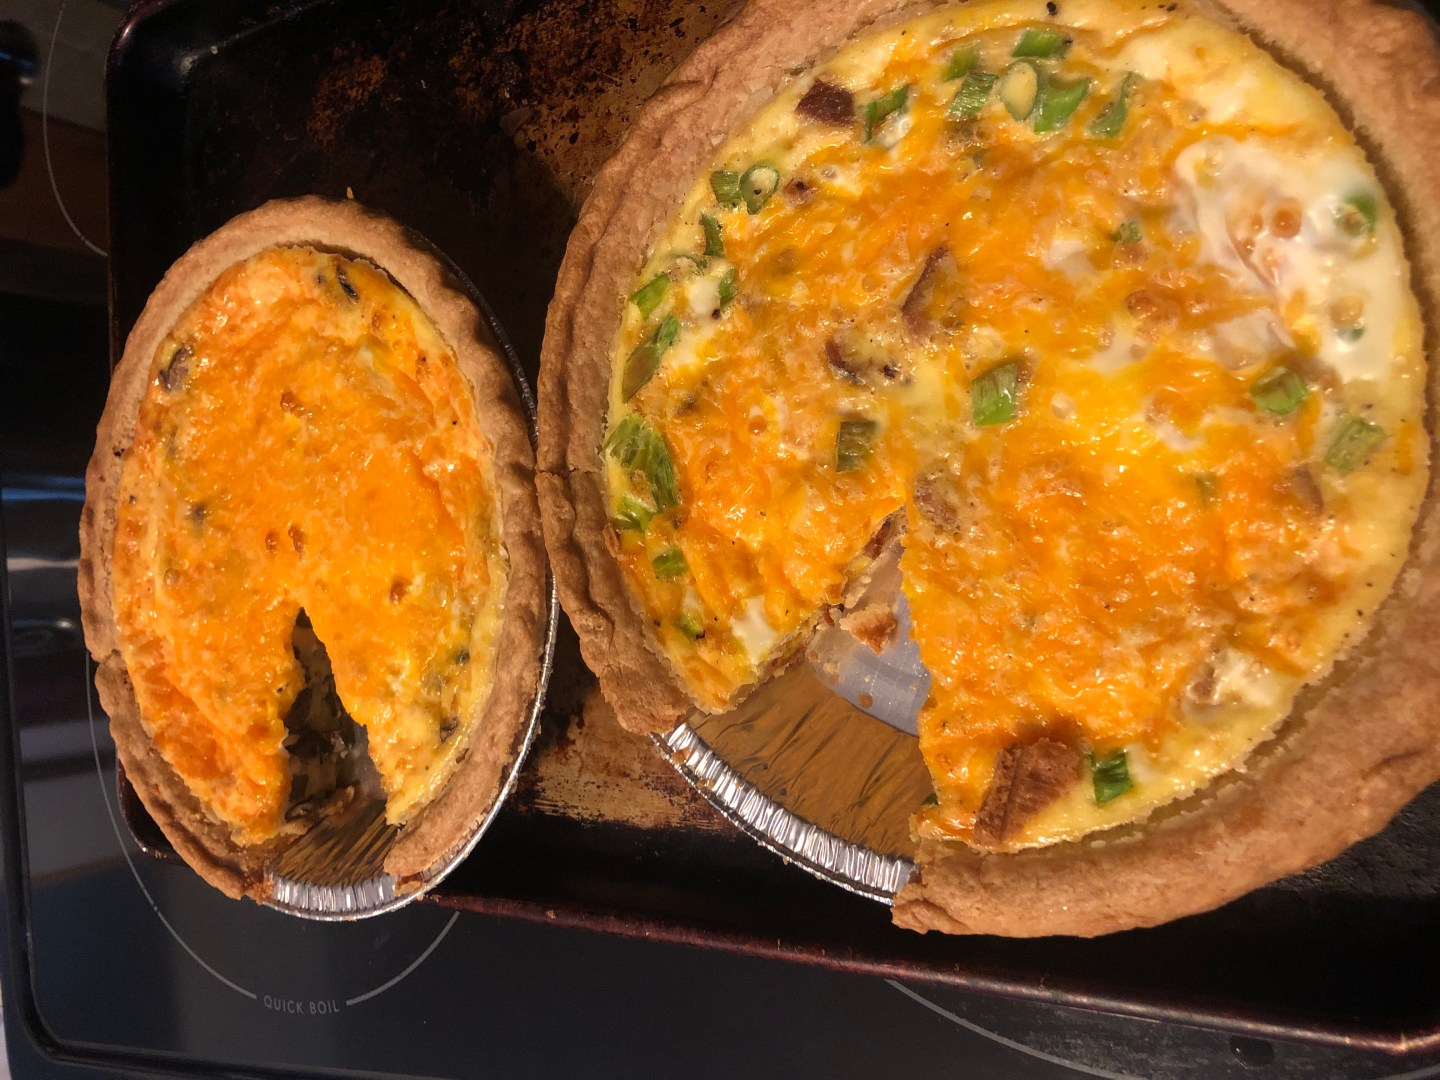 What's Cooking Wednesday: Quiche